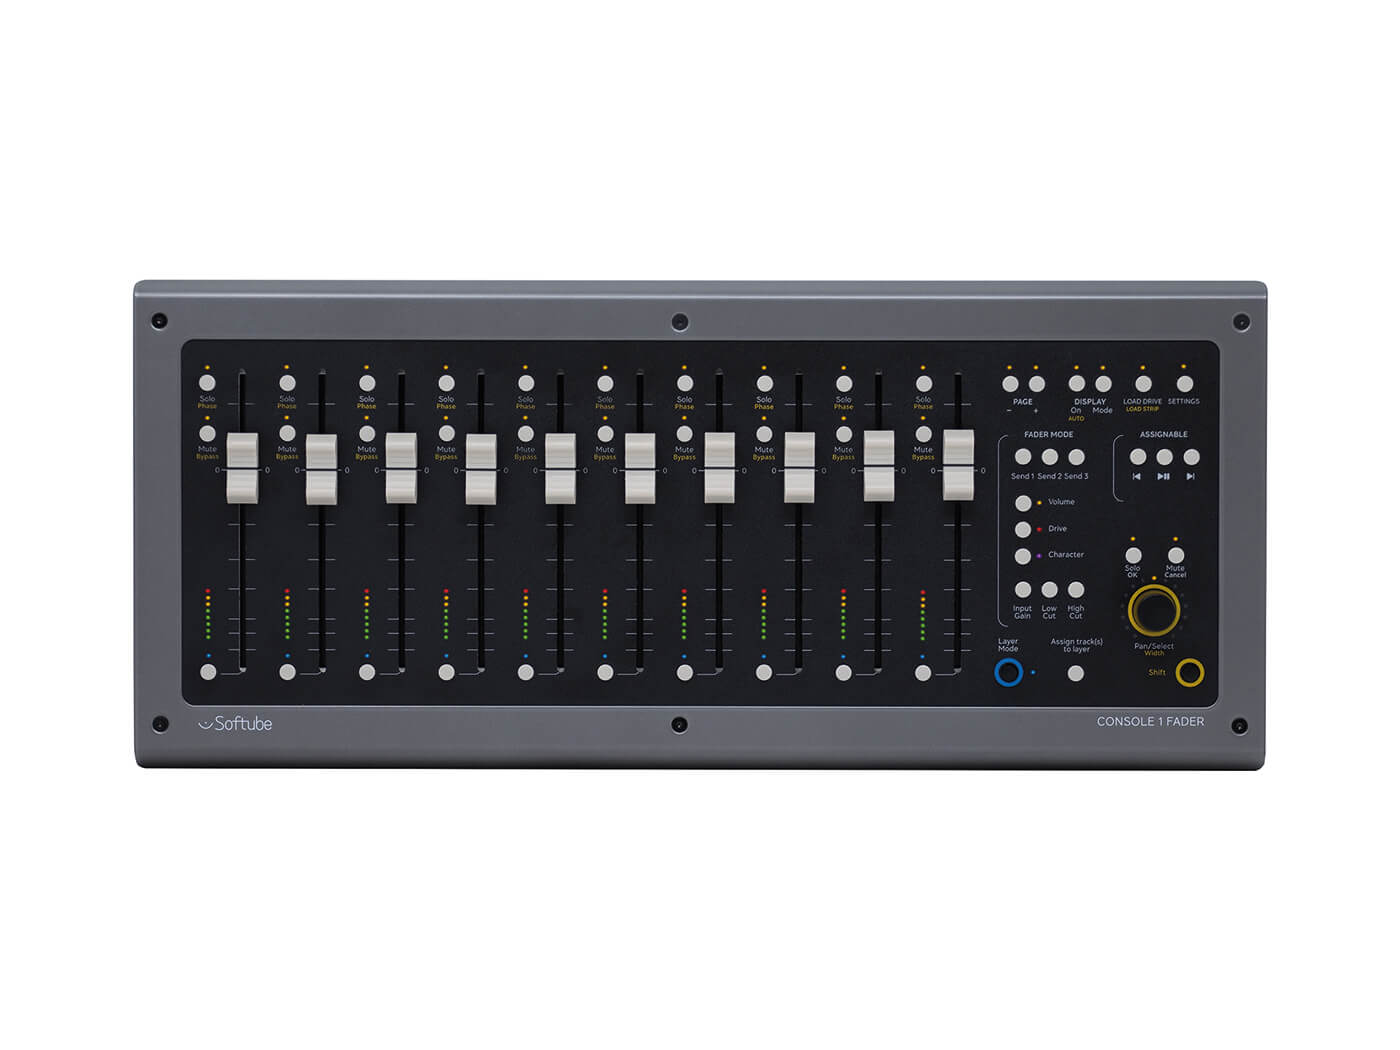 Softube Console 1 Fader Review